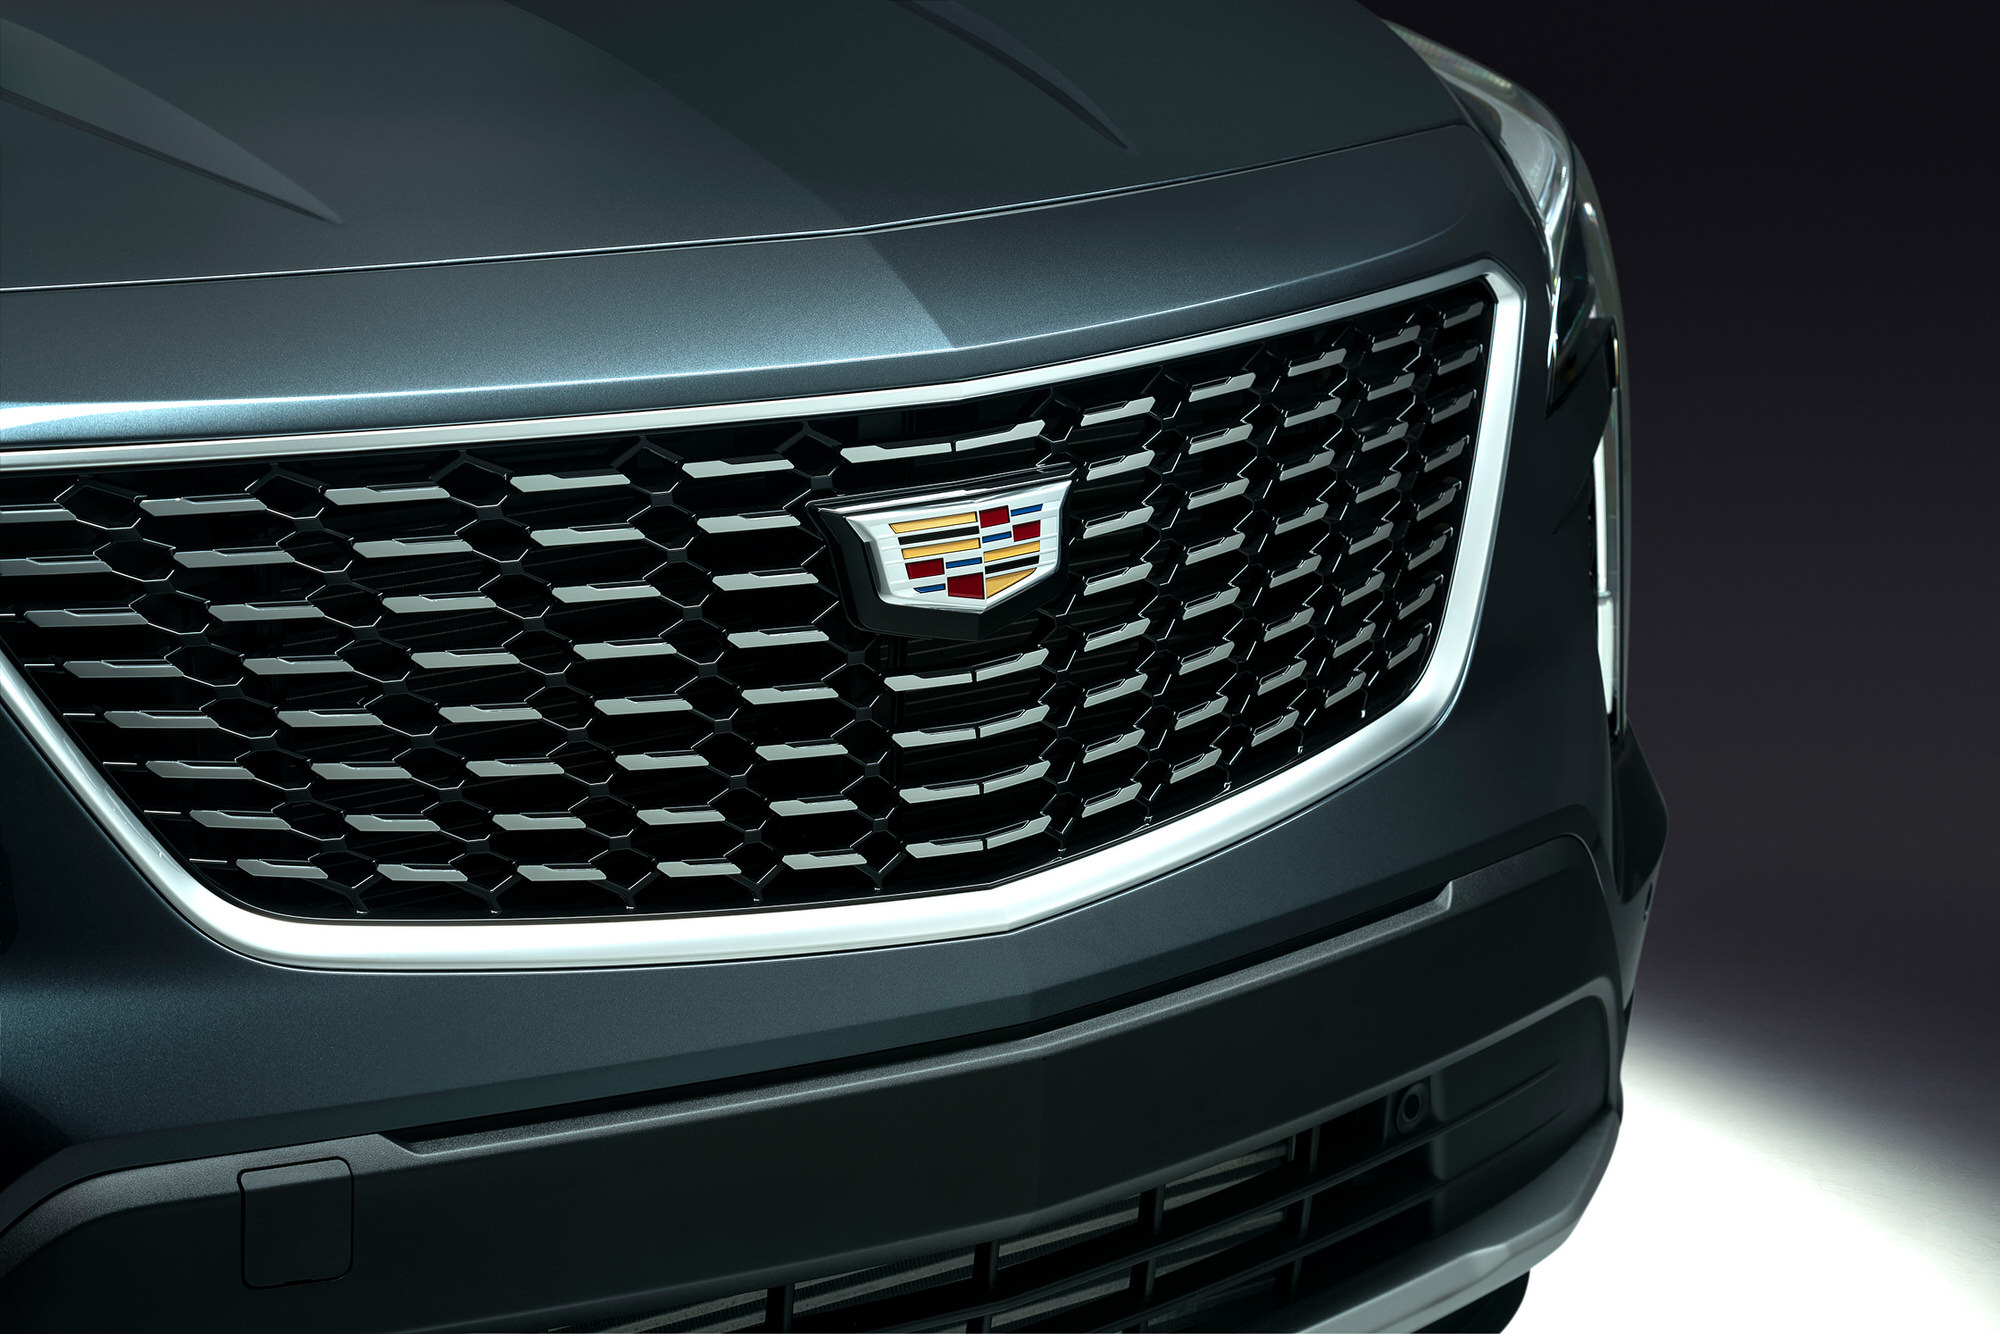 Cadillac XT4 front grill commercial studio photography